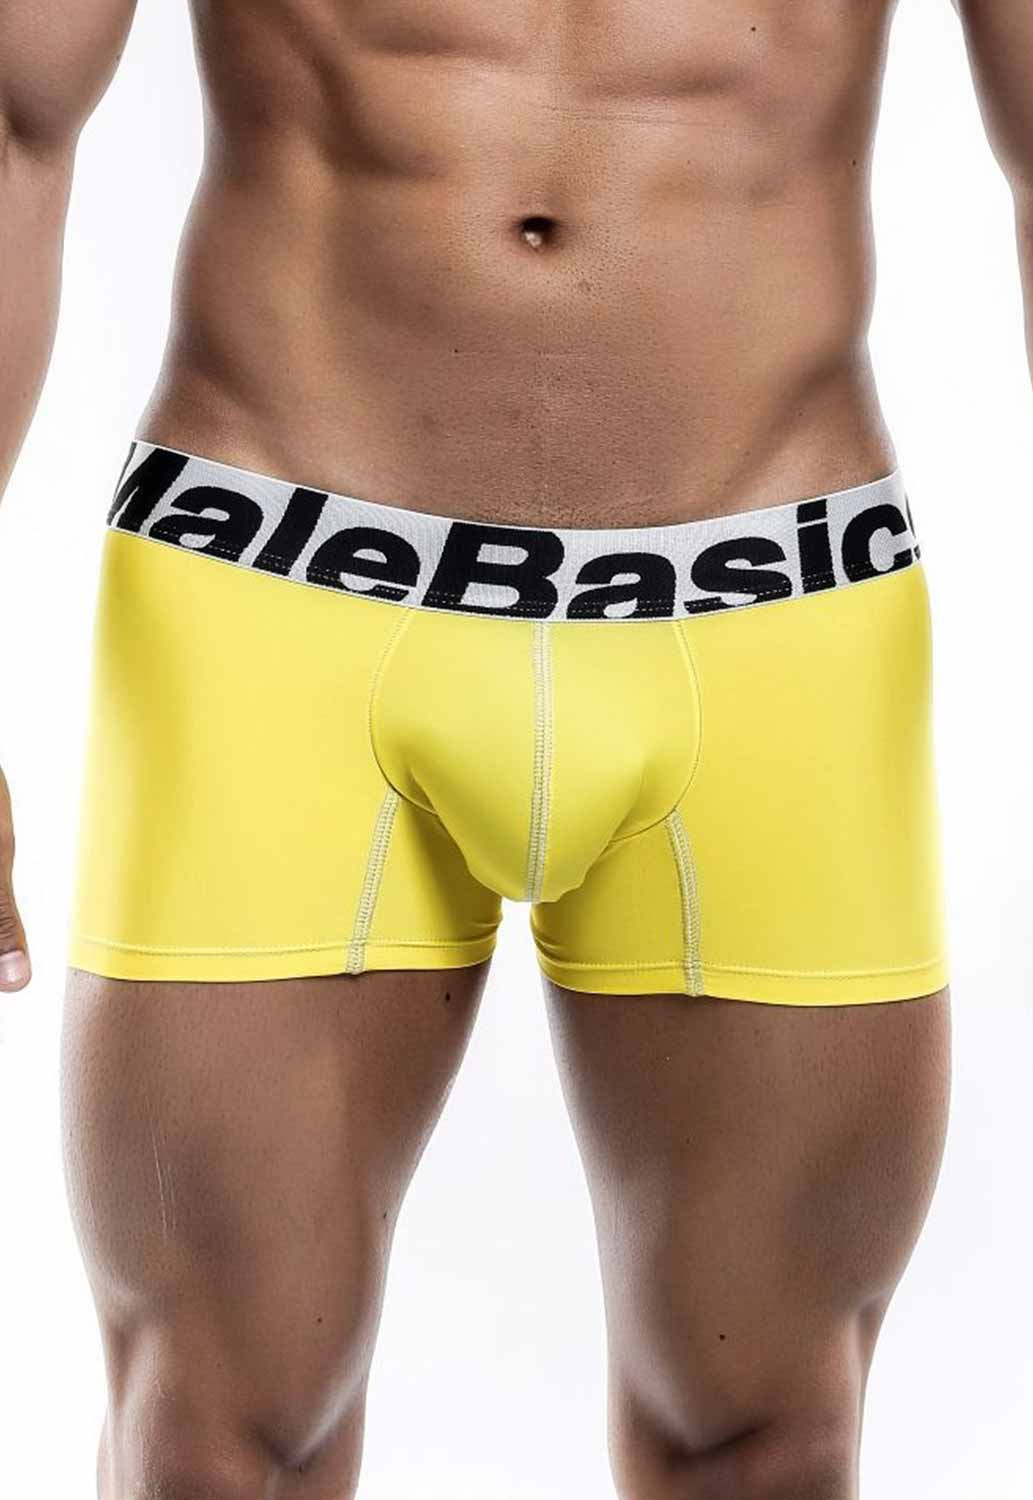 thumbnail 14 - Malebasics Men's Microfiber Short Boxer MBM01Y Men's Trunks